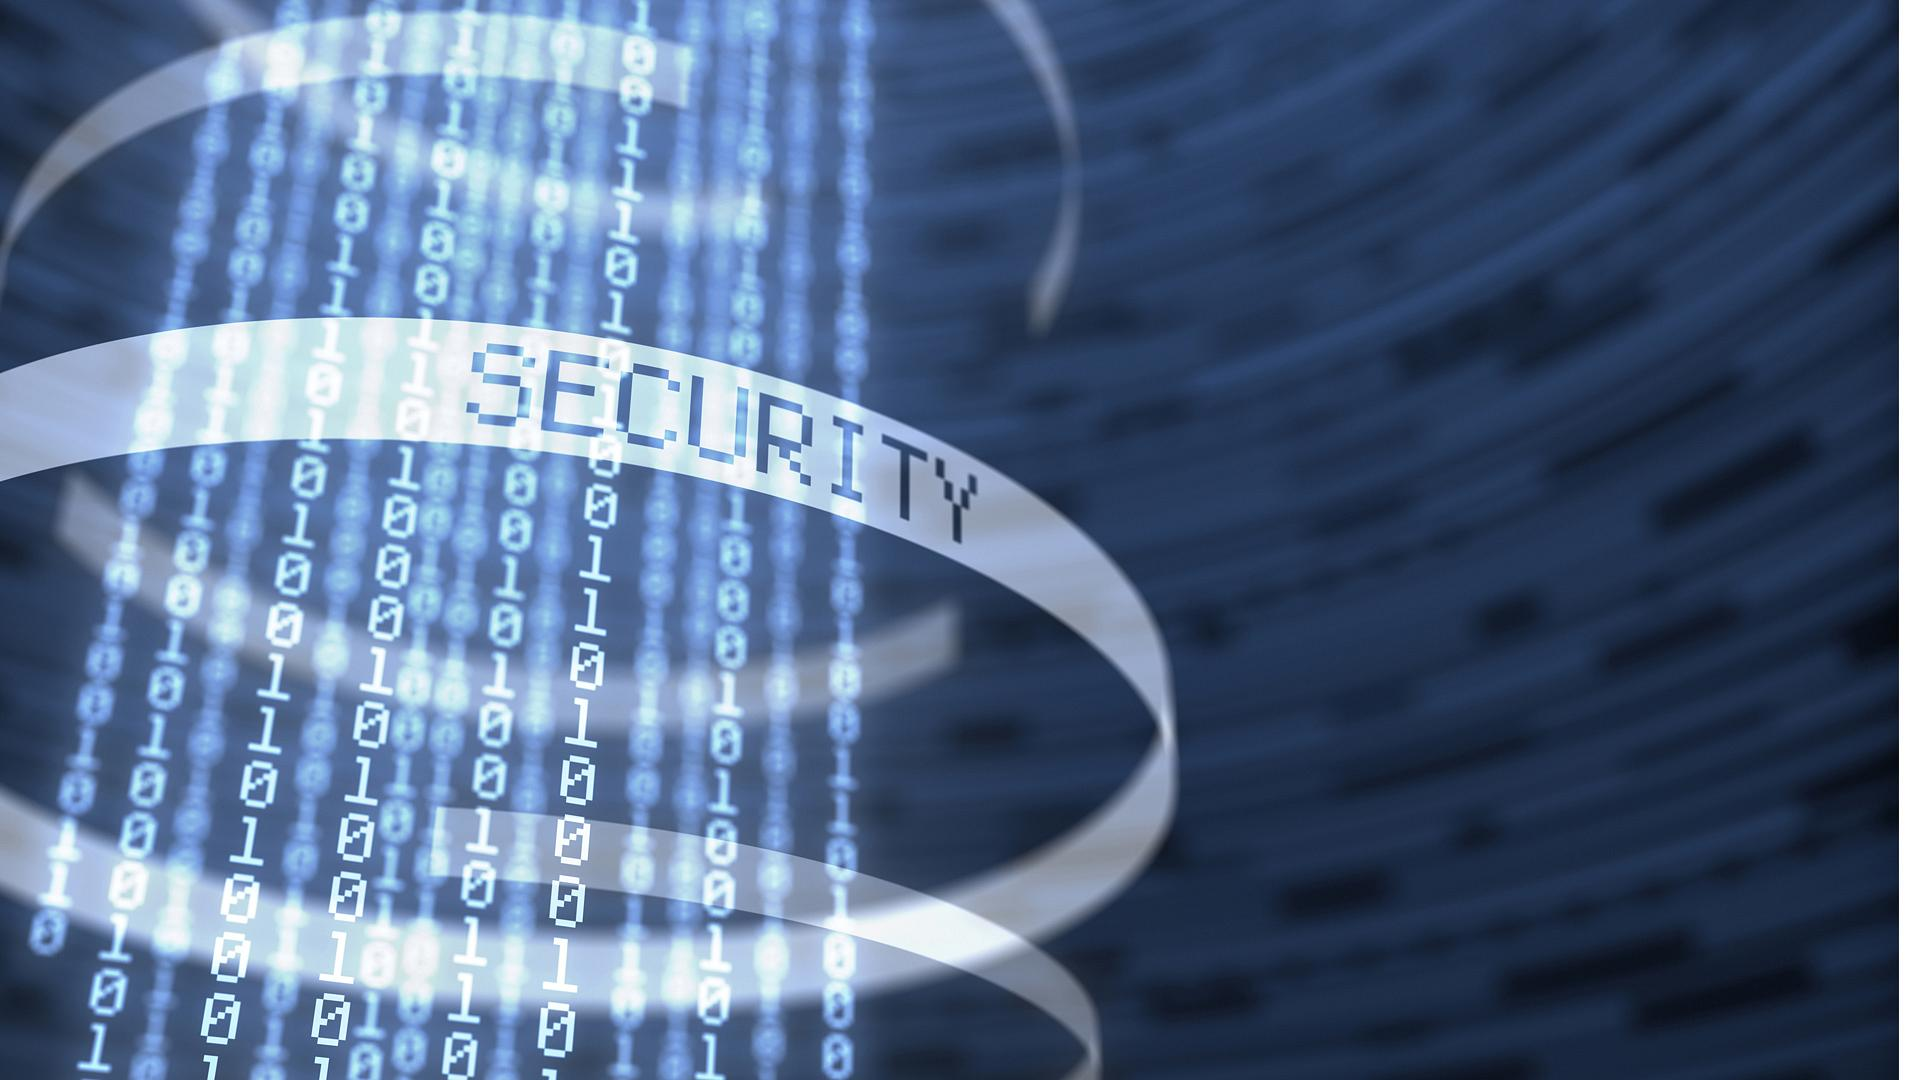 Recent Government Guidelines on Data Breach / Cyber Security